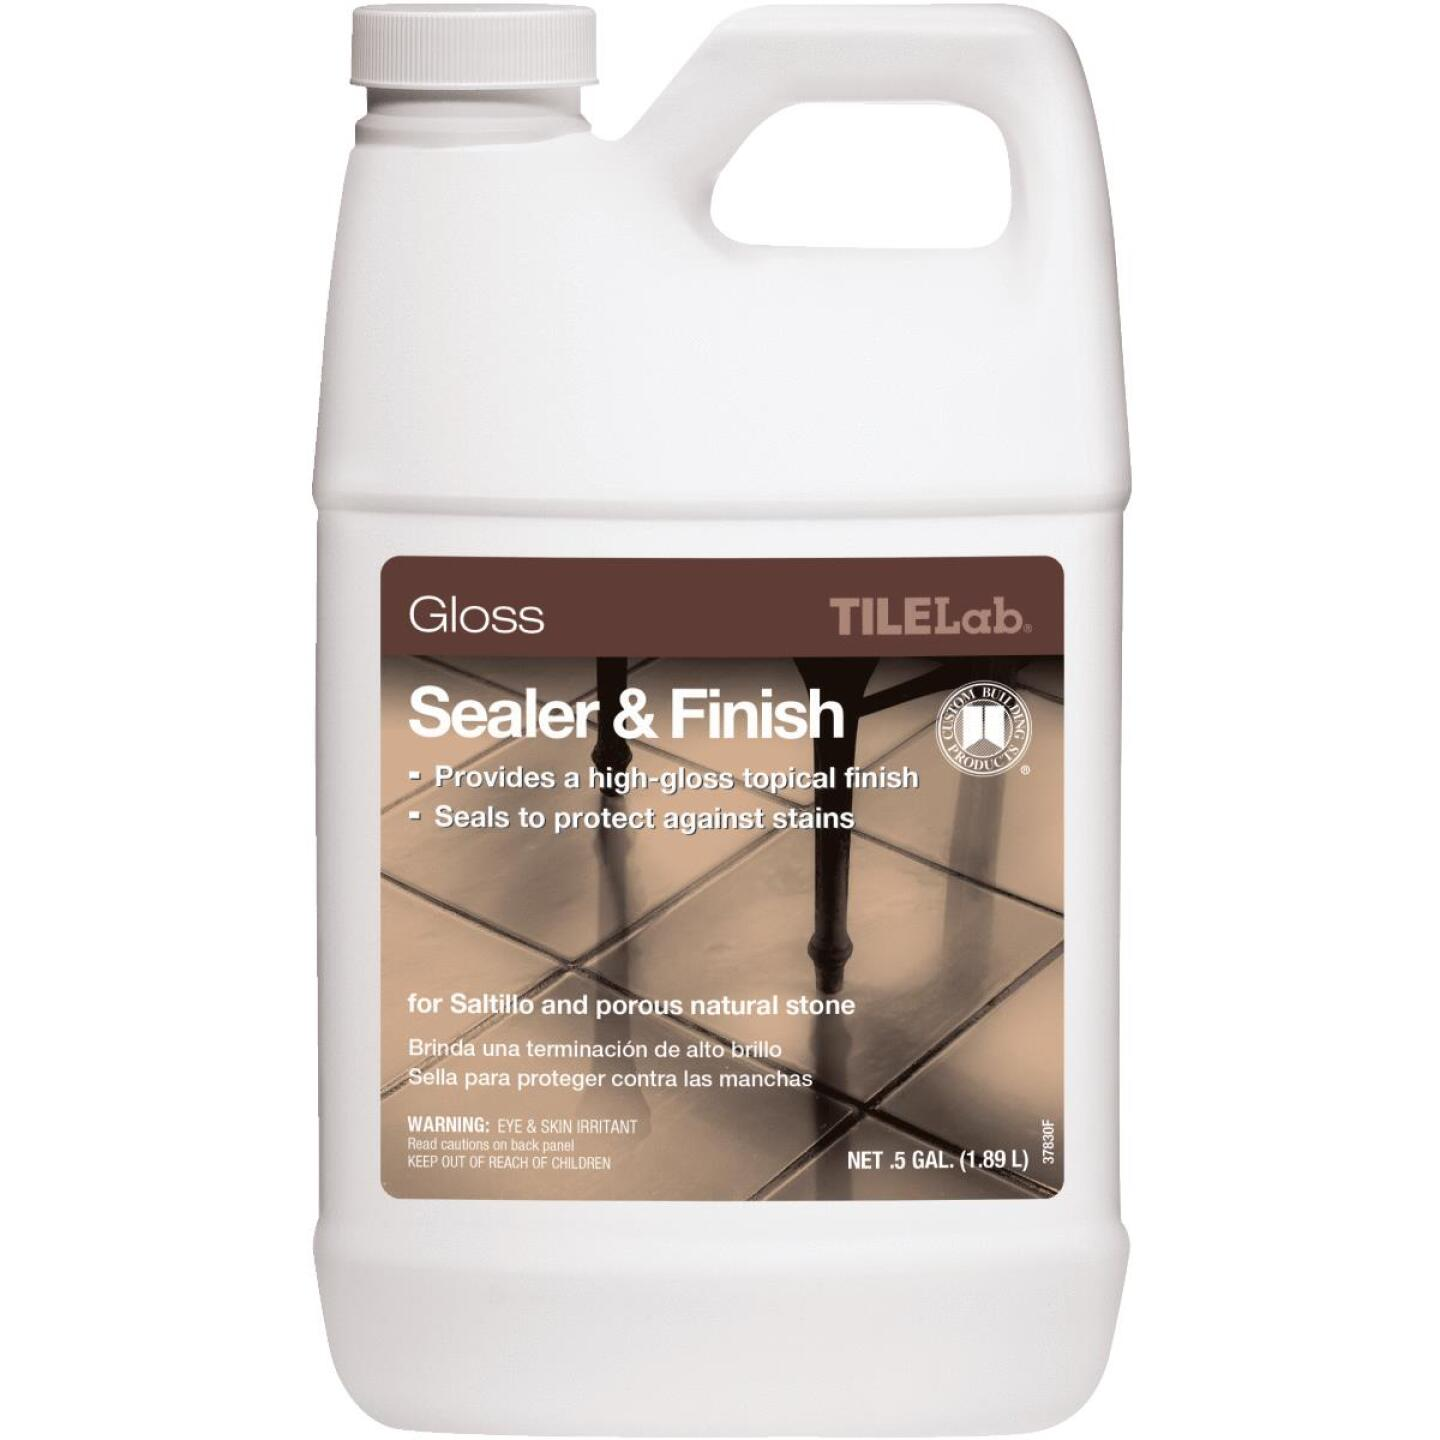 Custom Building Products TILELab 1/2 Gal. Gloss Tile Sealer & Finish Image 1